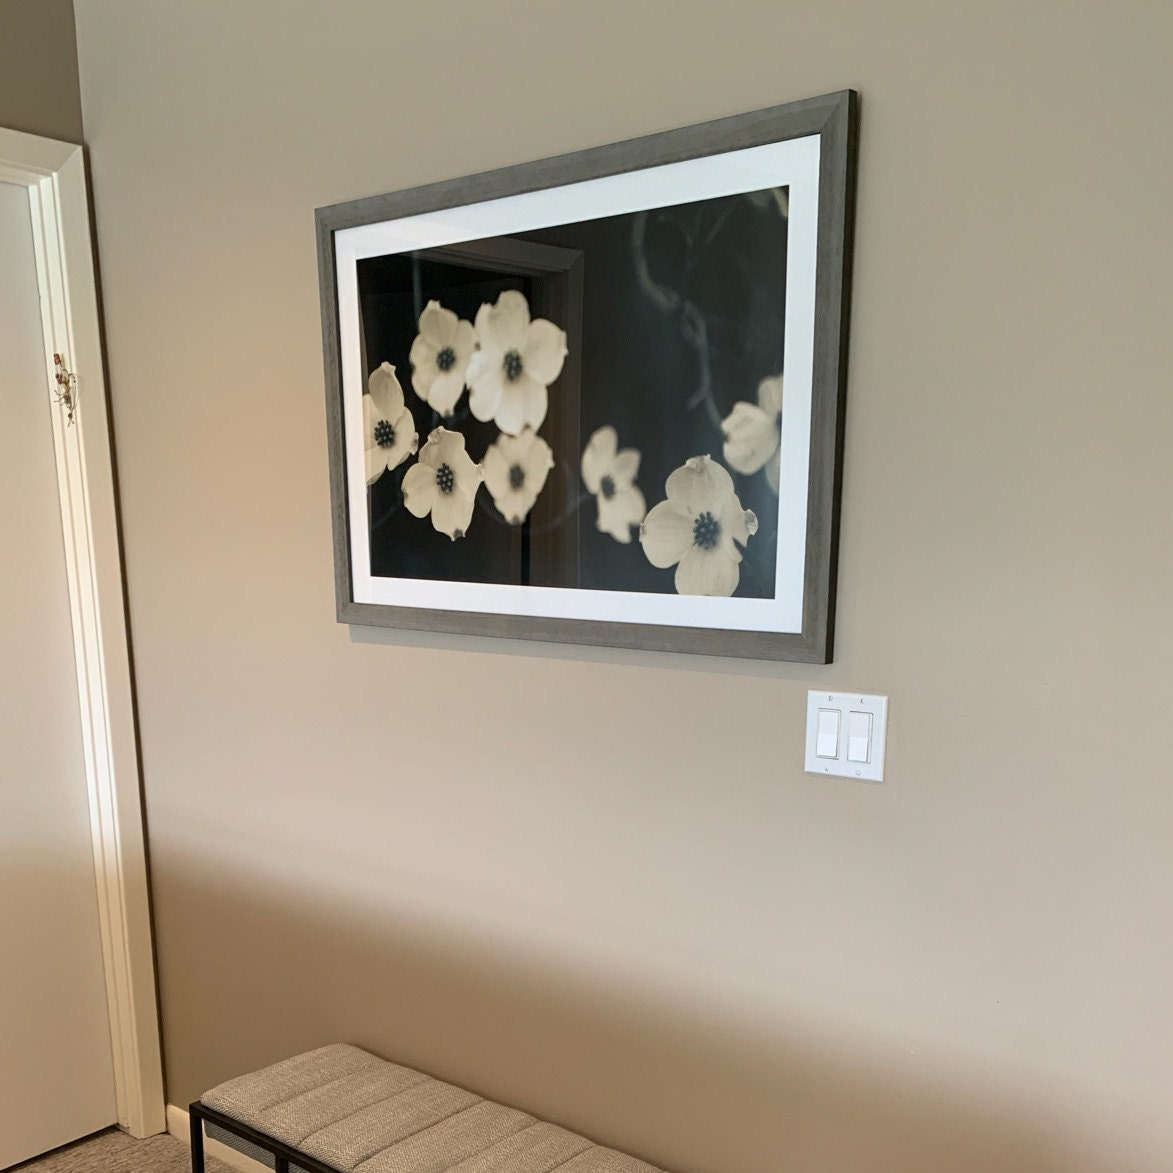 bergerlcsw added a photo of their purchase